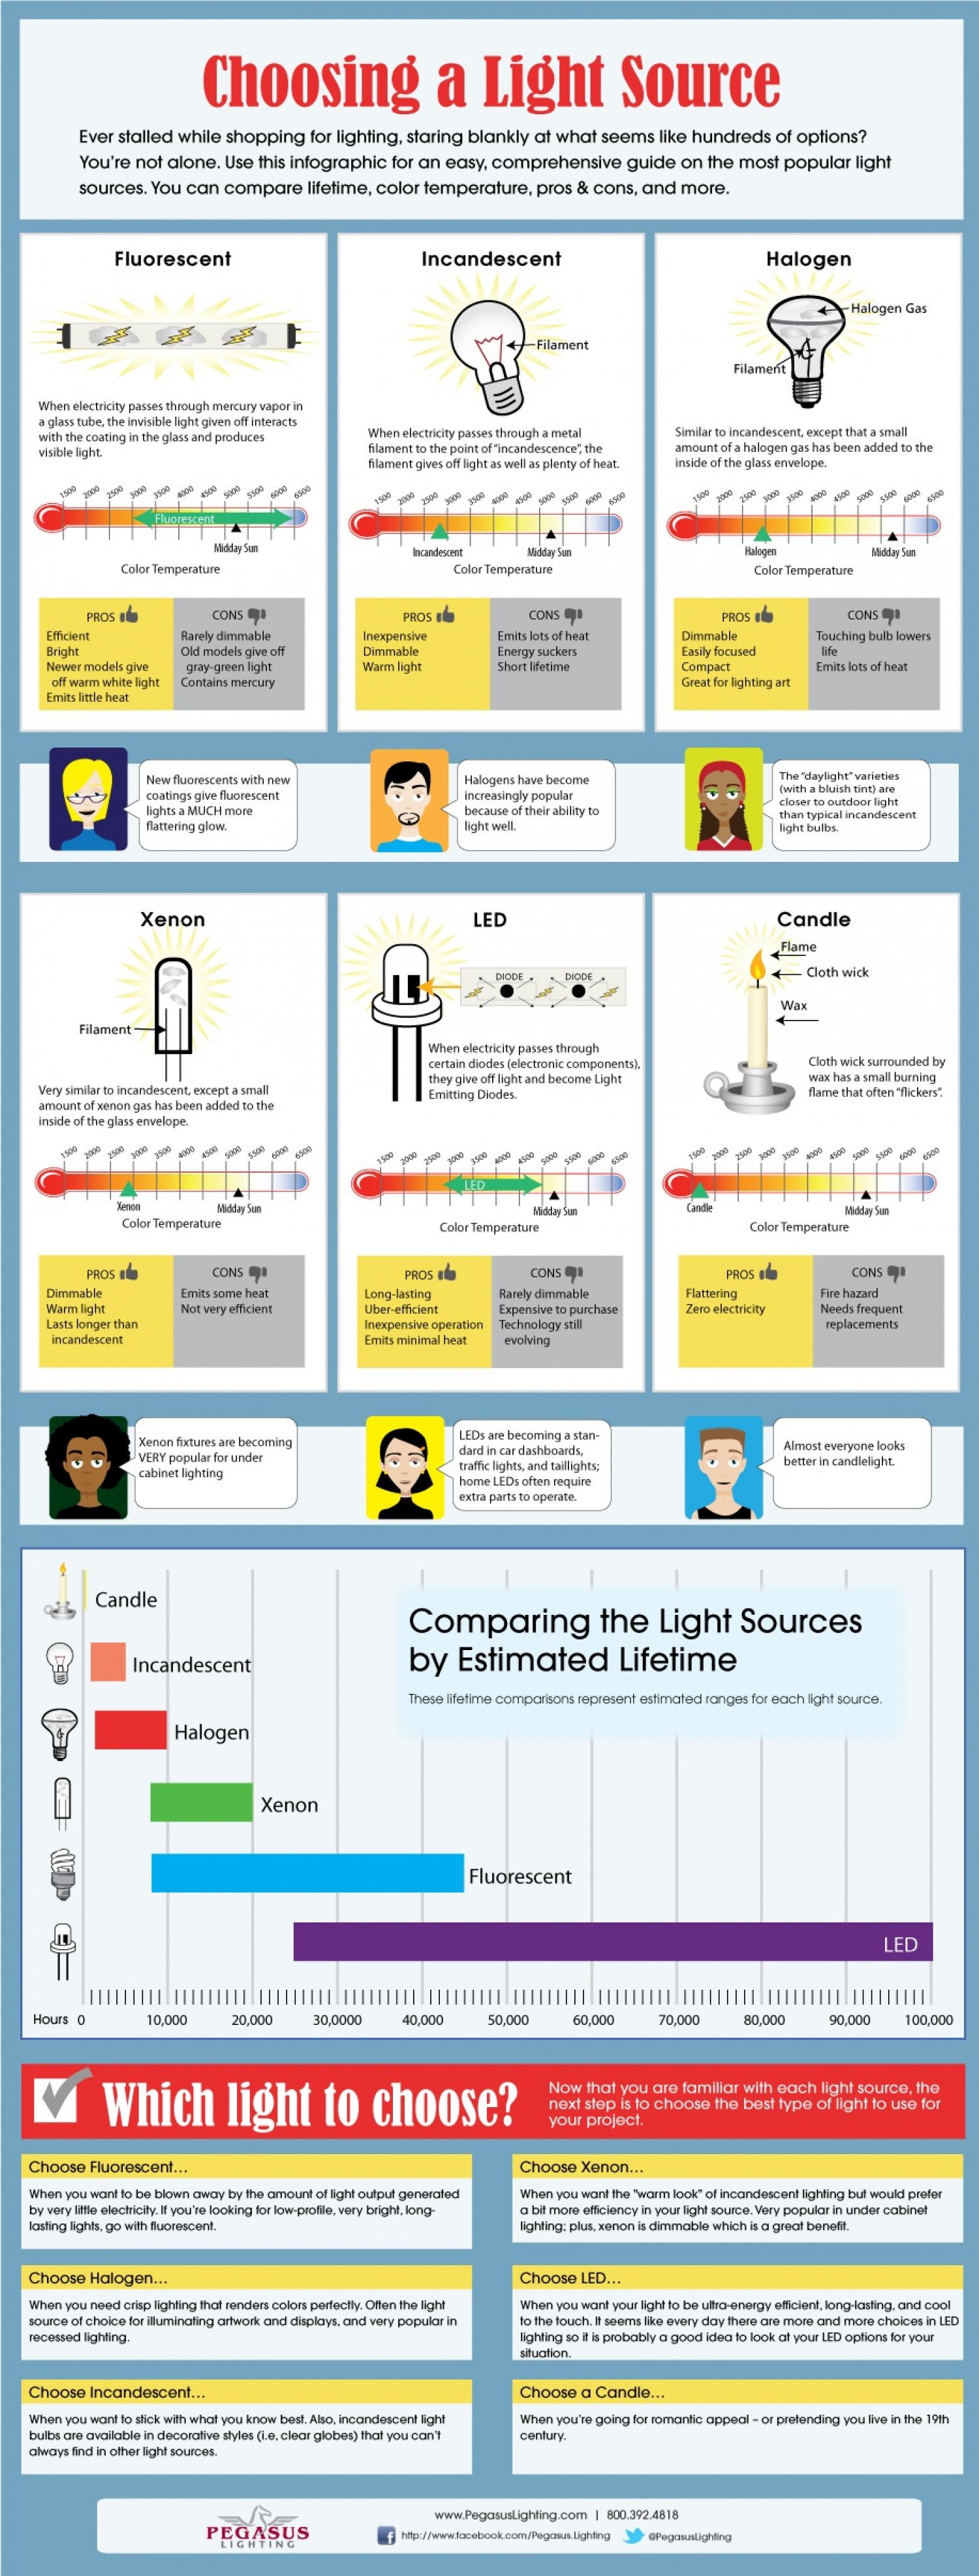 How To Choose A Light Source Infographic